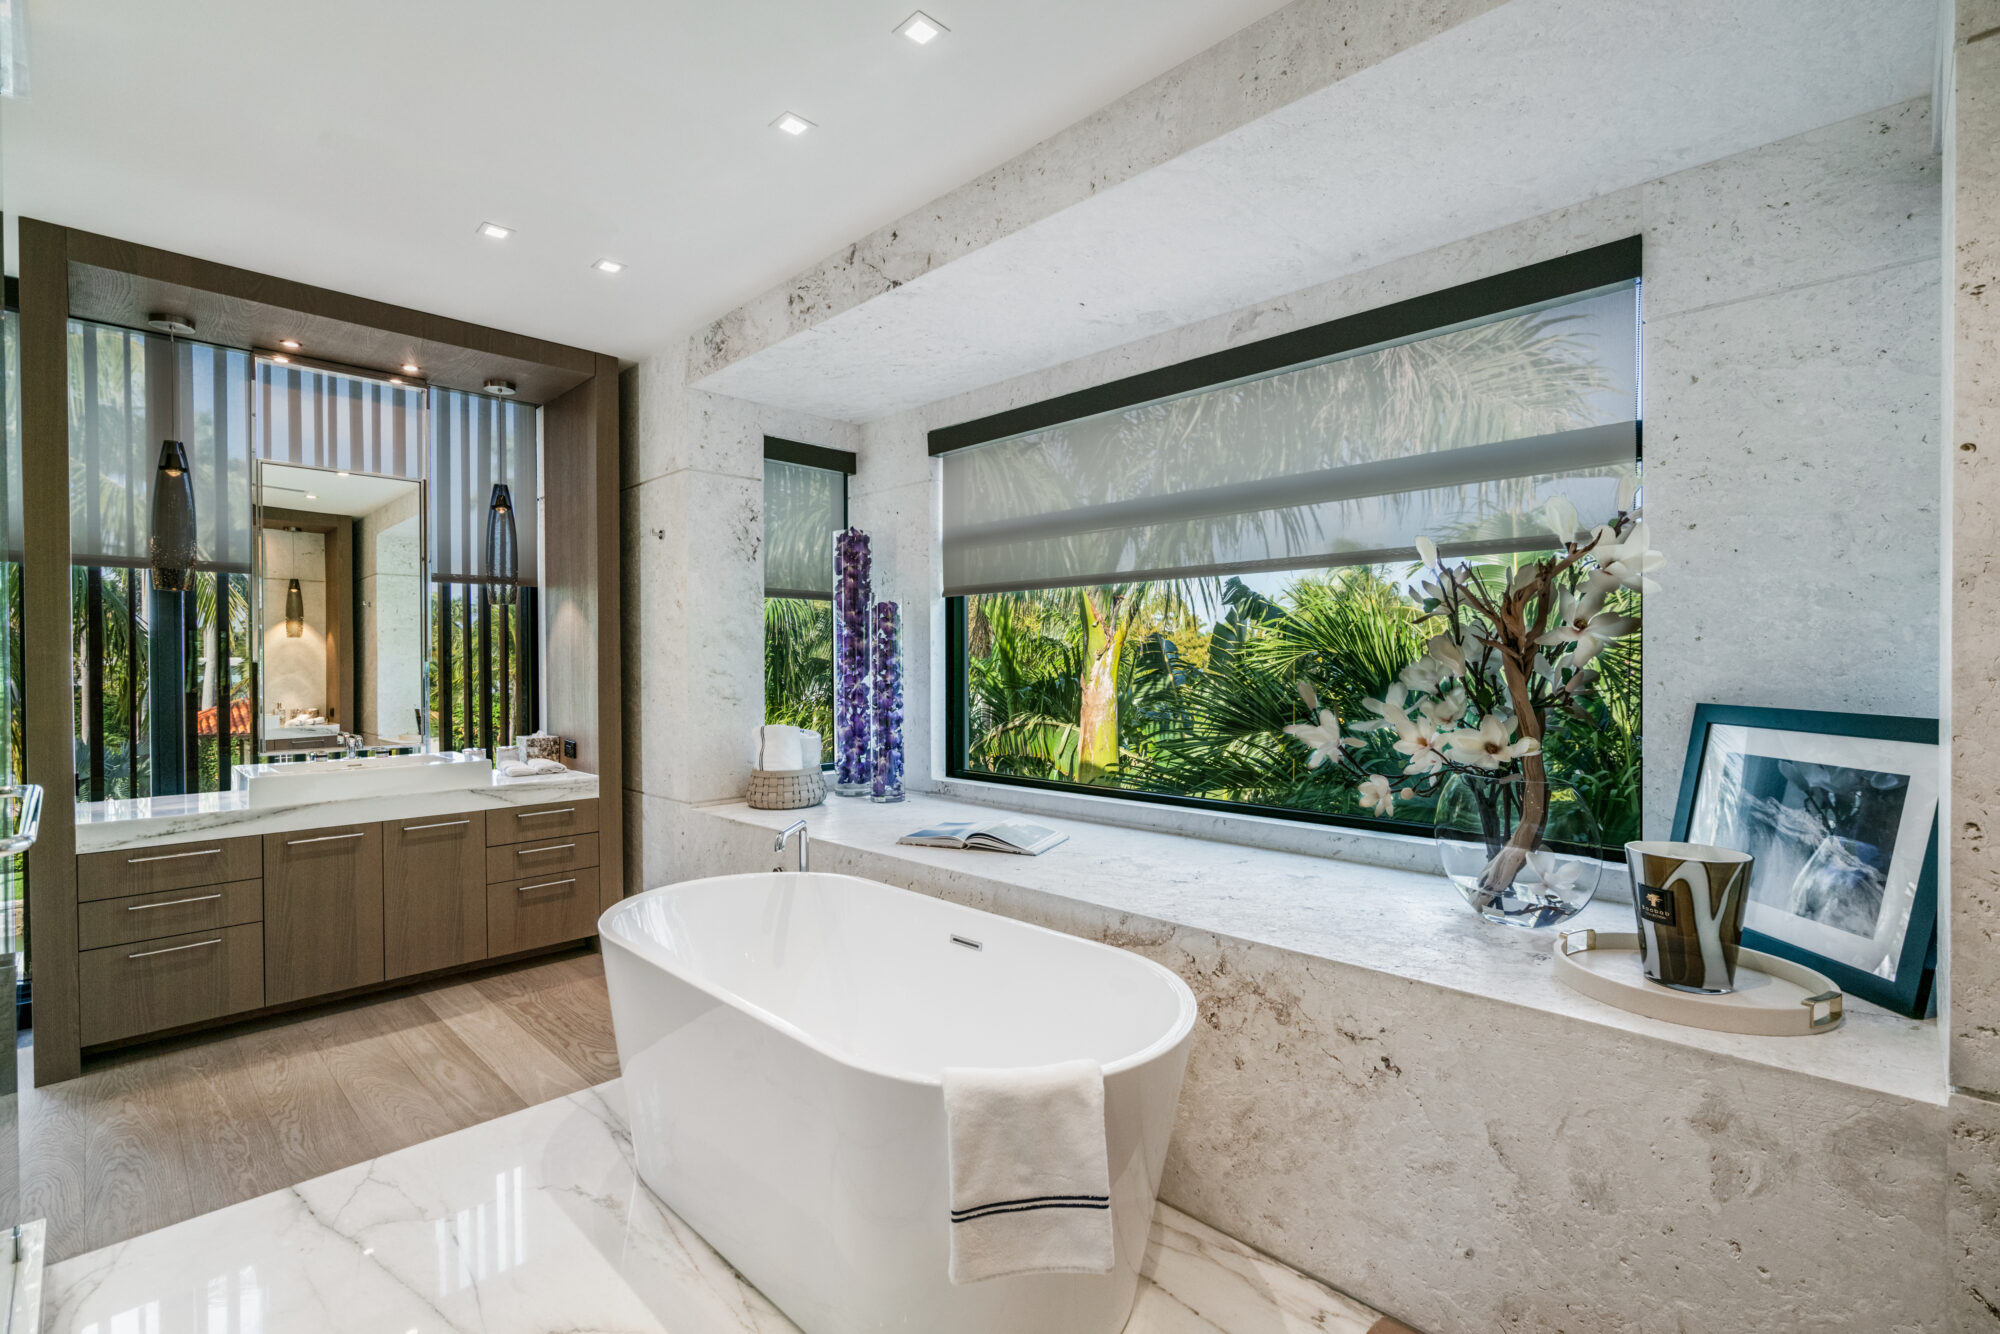 bathroom with freestanding tub and natural stone surfaces in